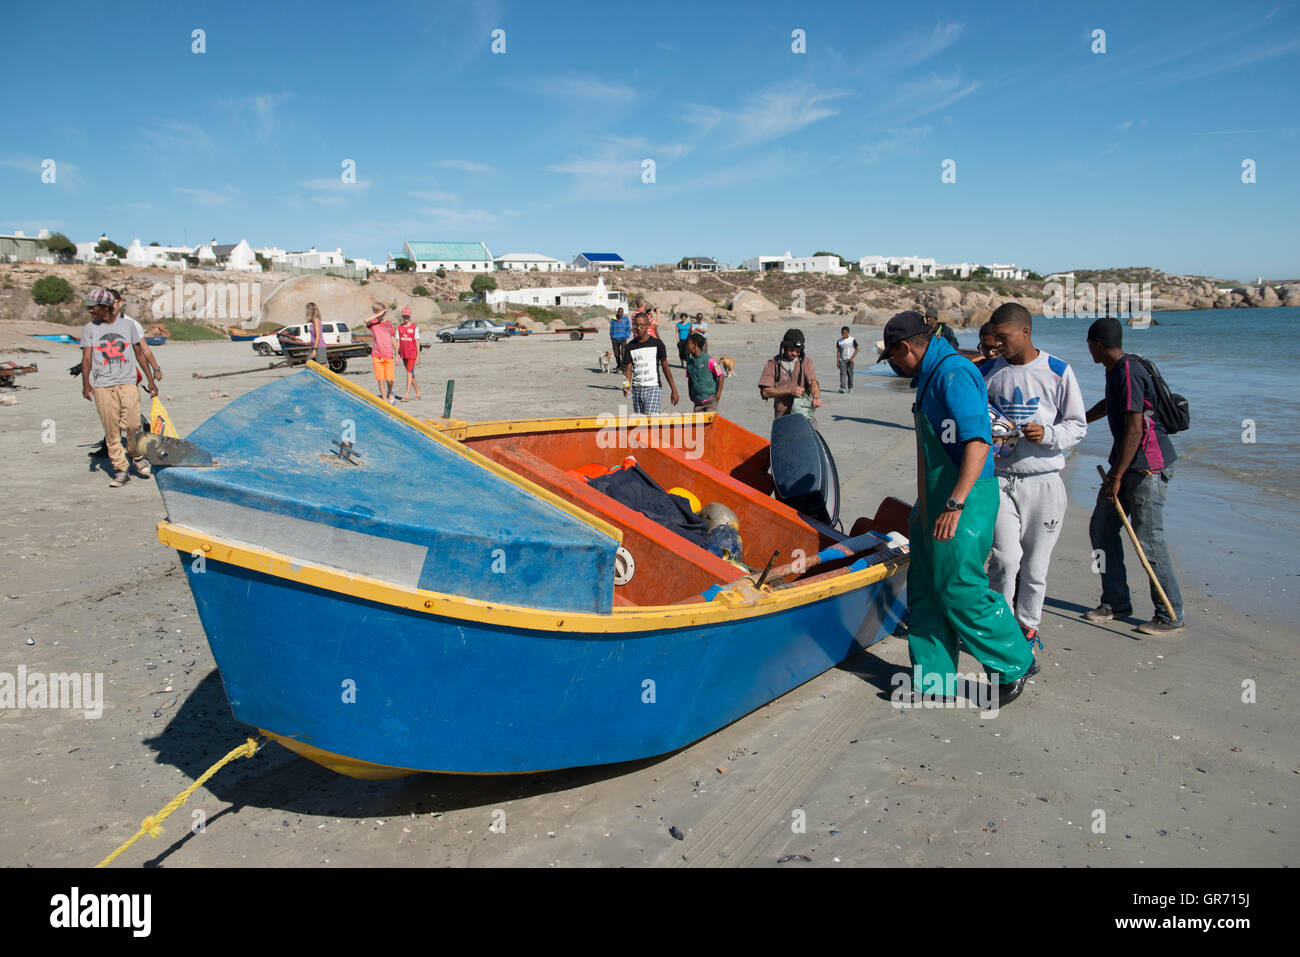 Crayfish catcher preparing their boat, Paternoster, Western Cape, South Africa - Stock Image